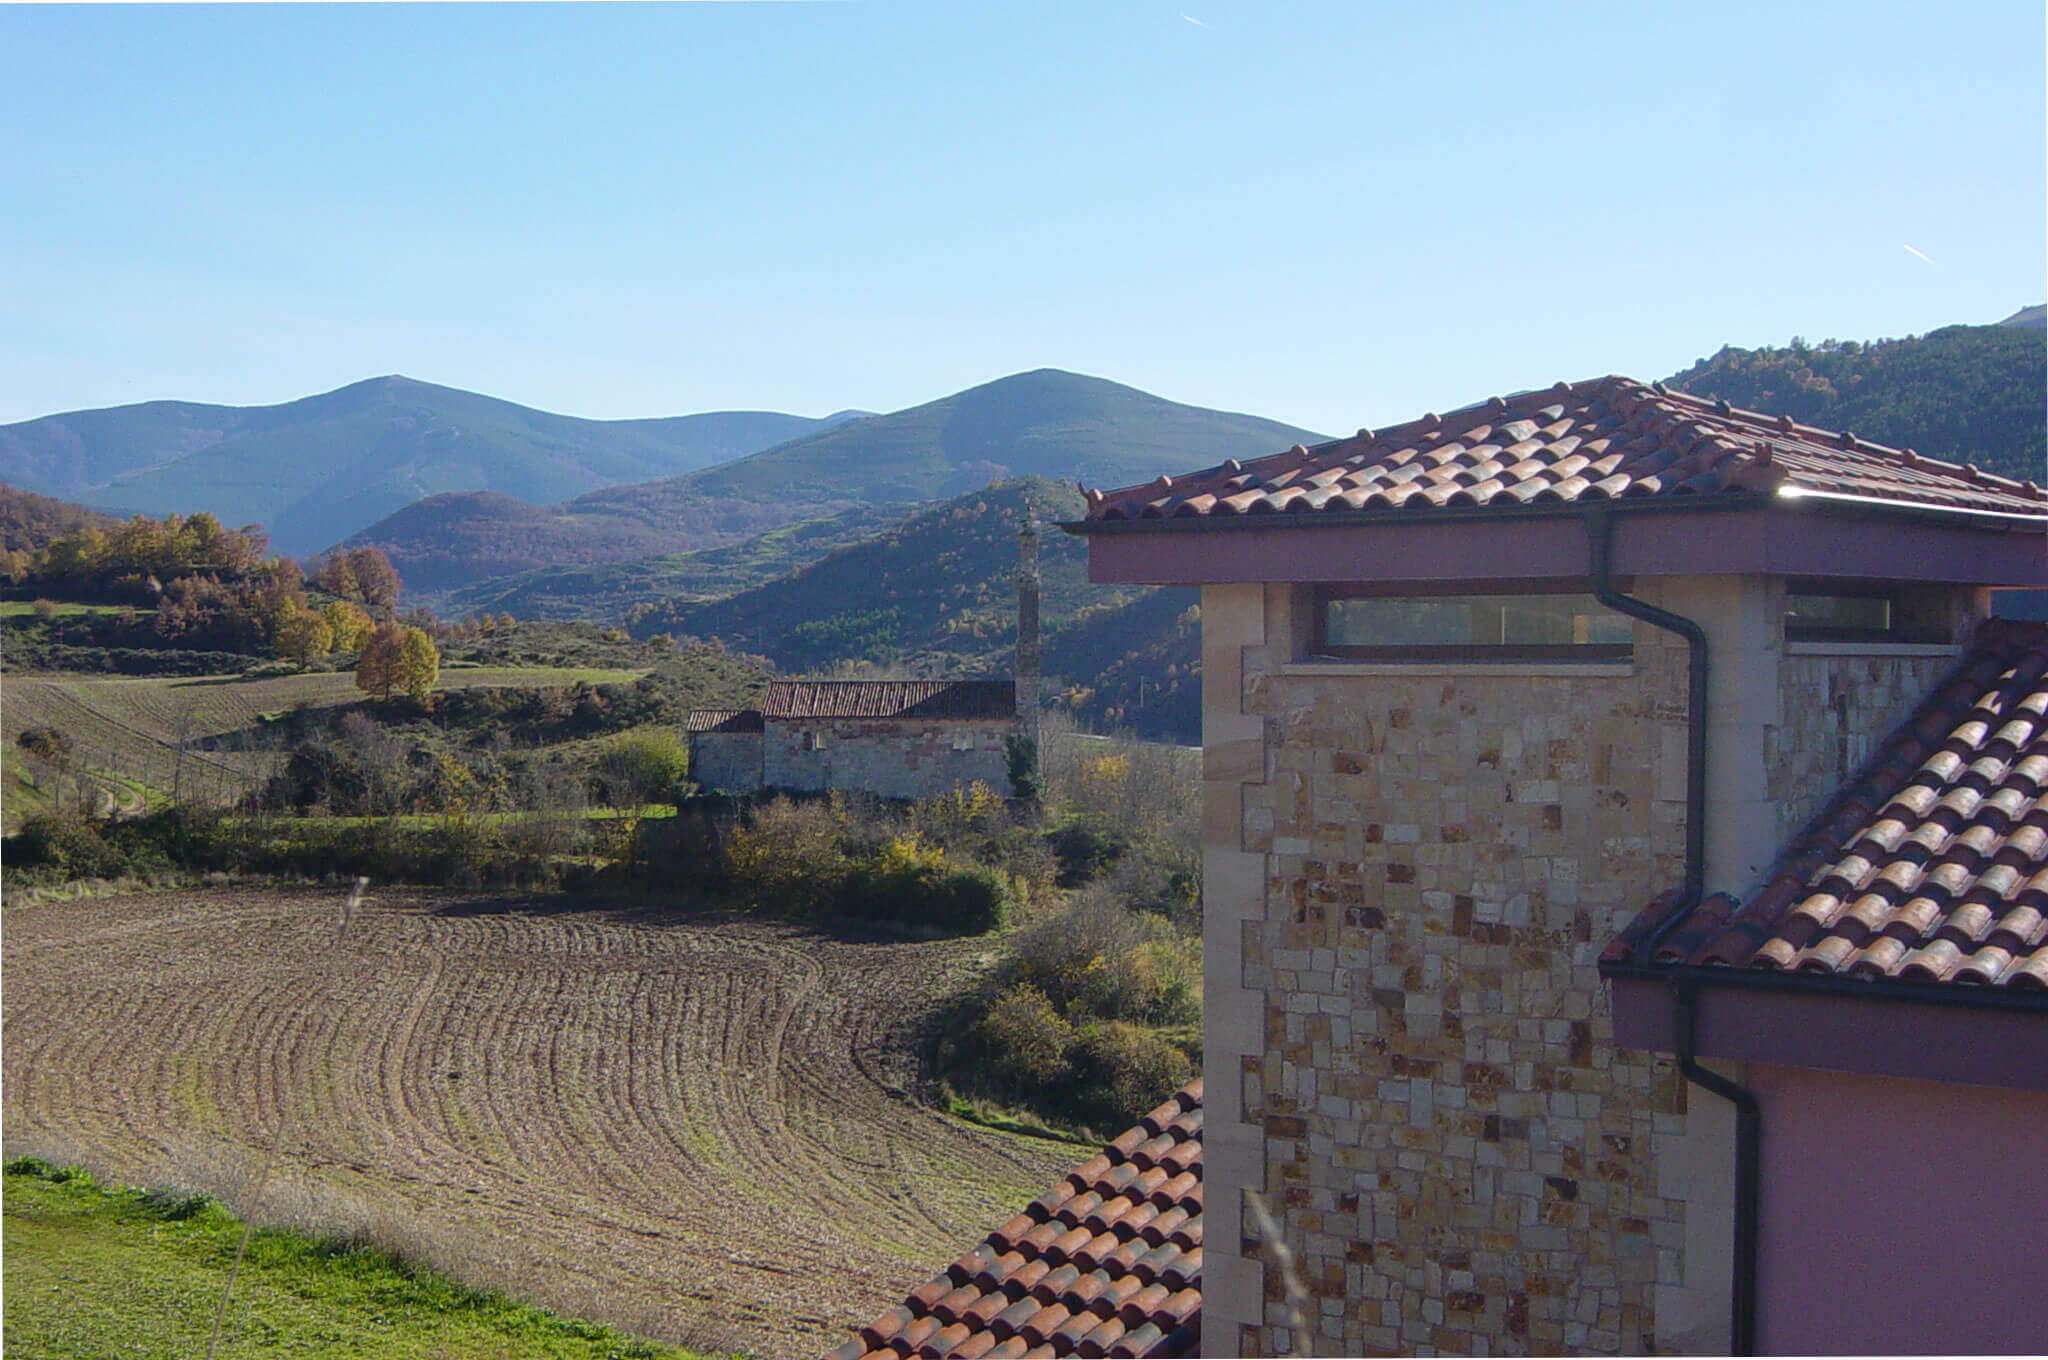 Countryside Villa Cottage for rent in North Spain near La Rioja wineries, villa Flavina